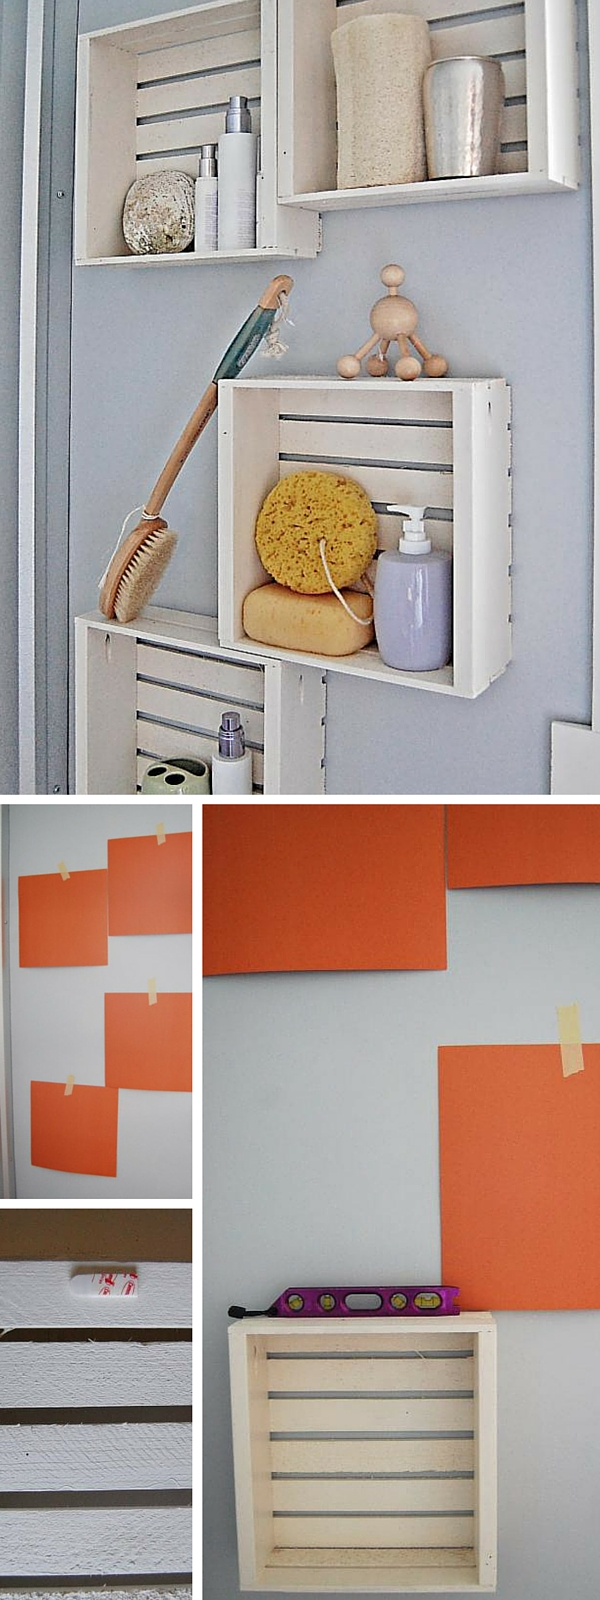 #DIY Crate Shelves #bathroomdecor